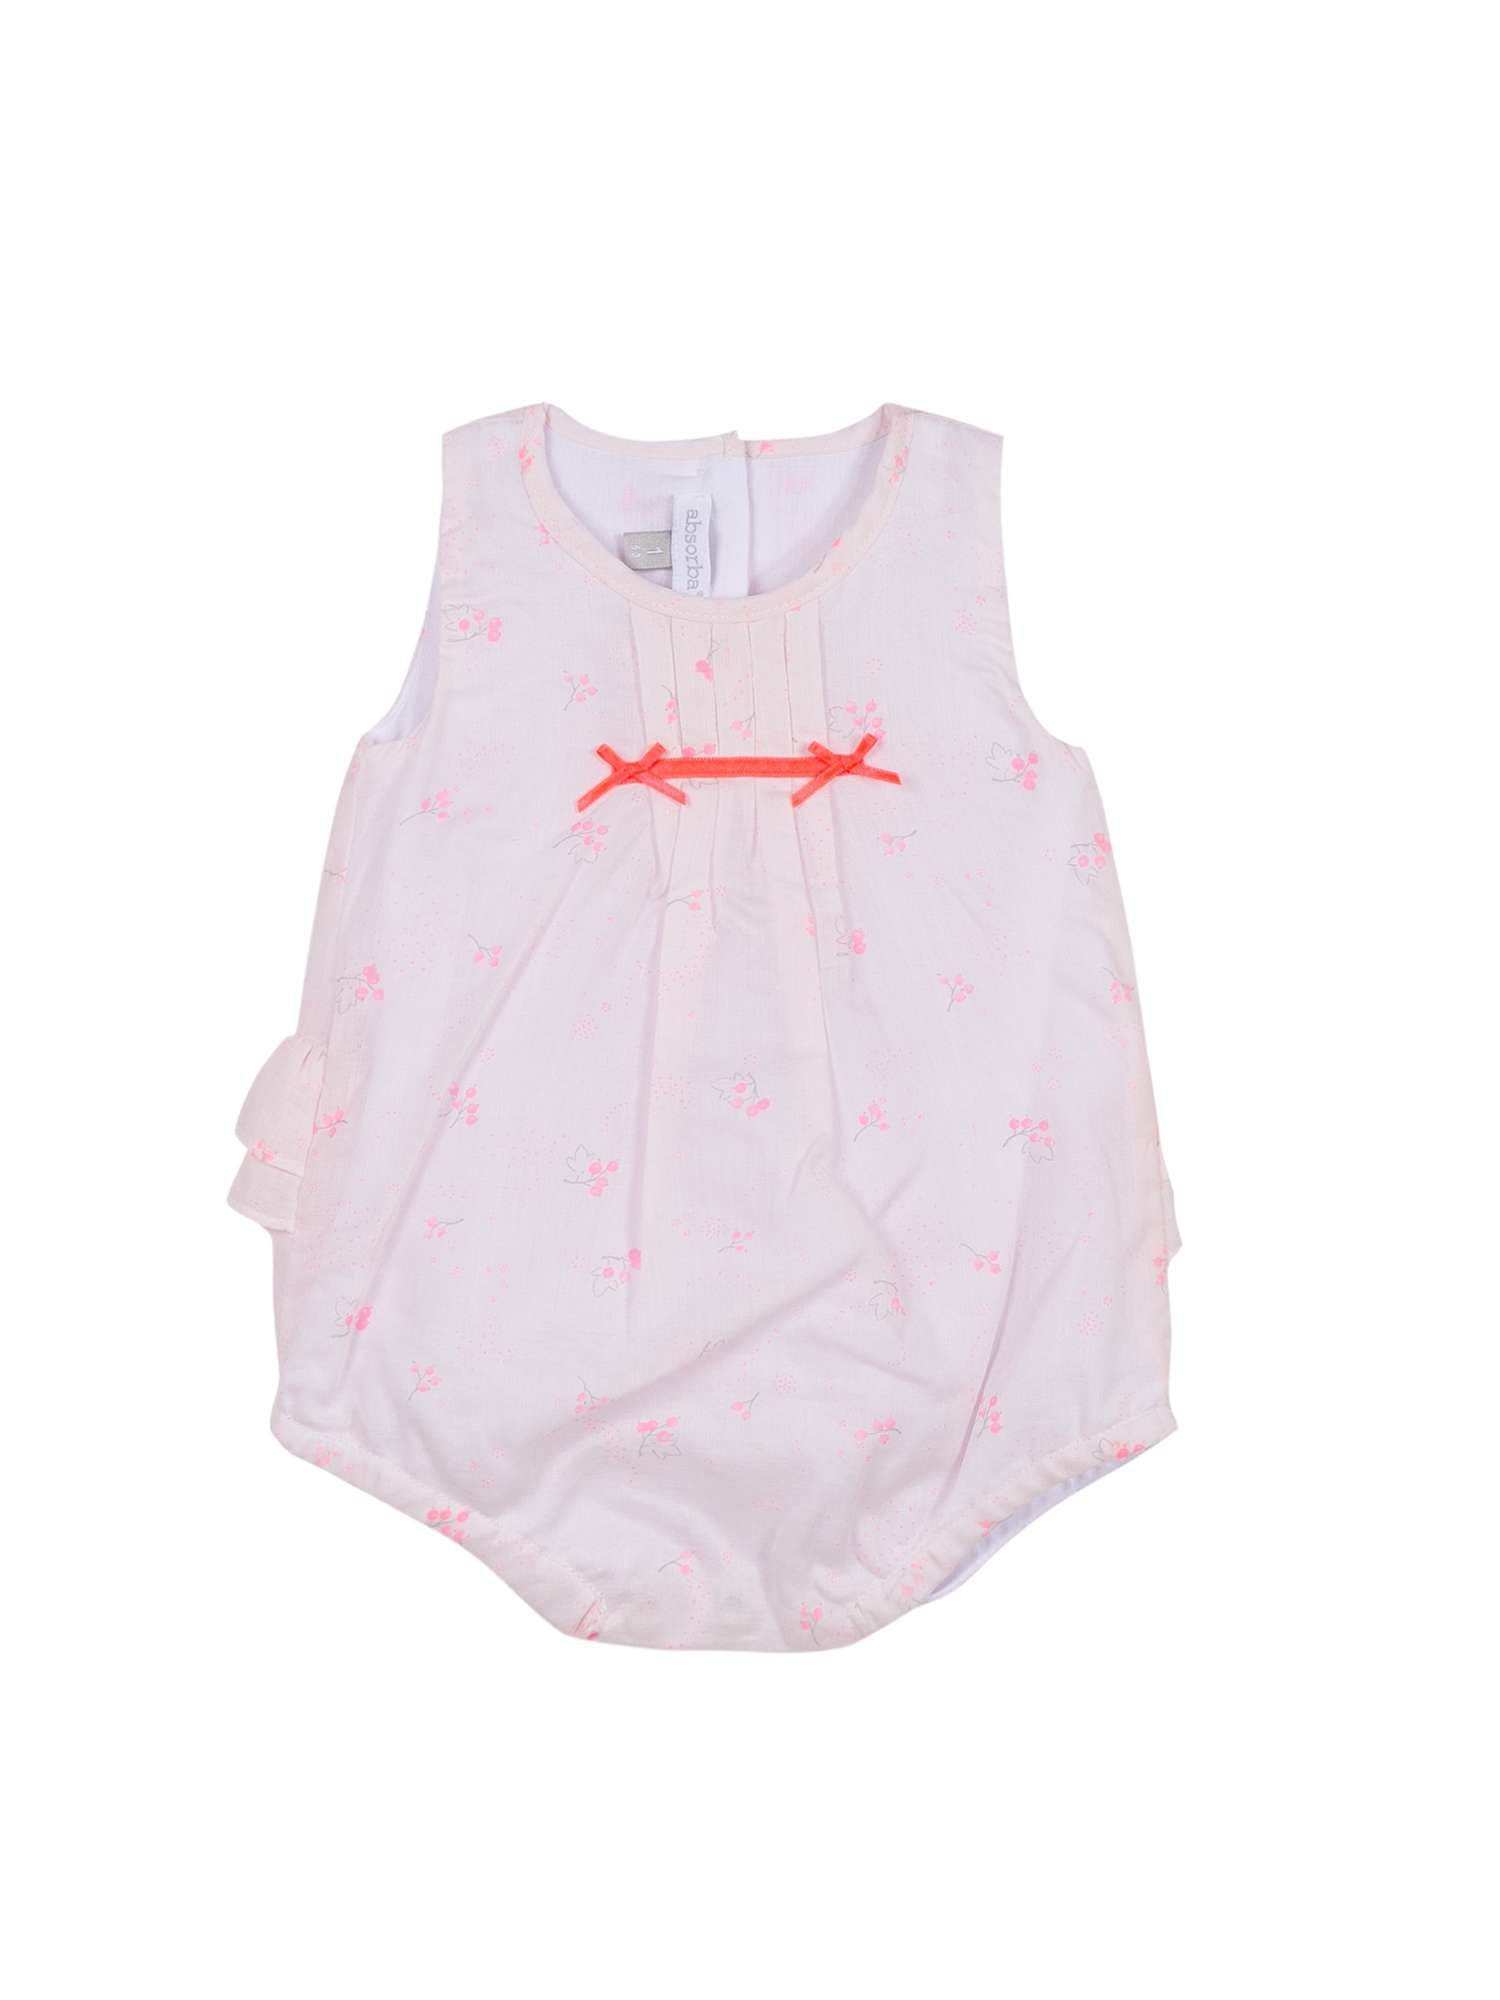 40bbacf62a35 Absorba Girls Pink All In One Shortie - House of Fraser